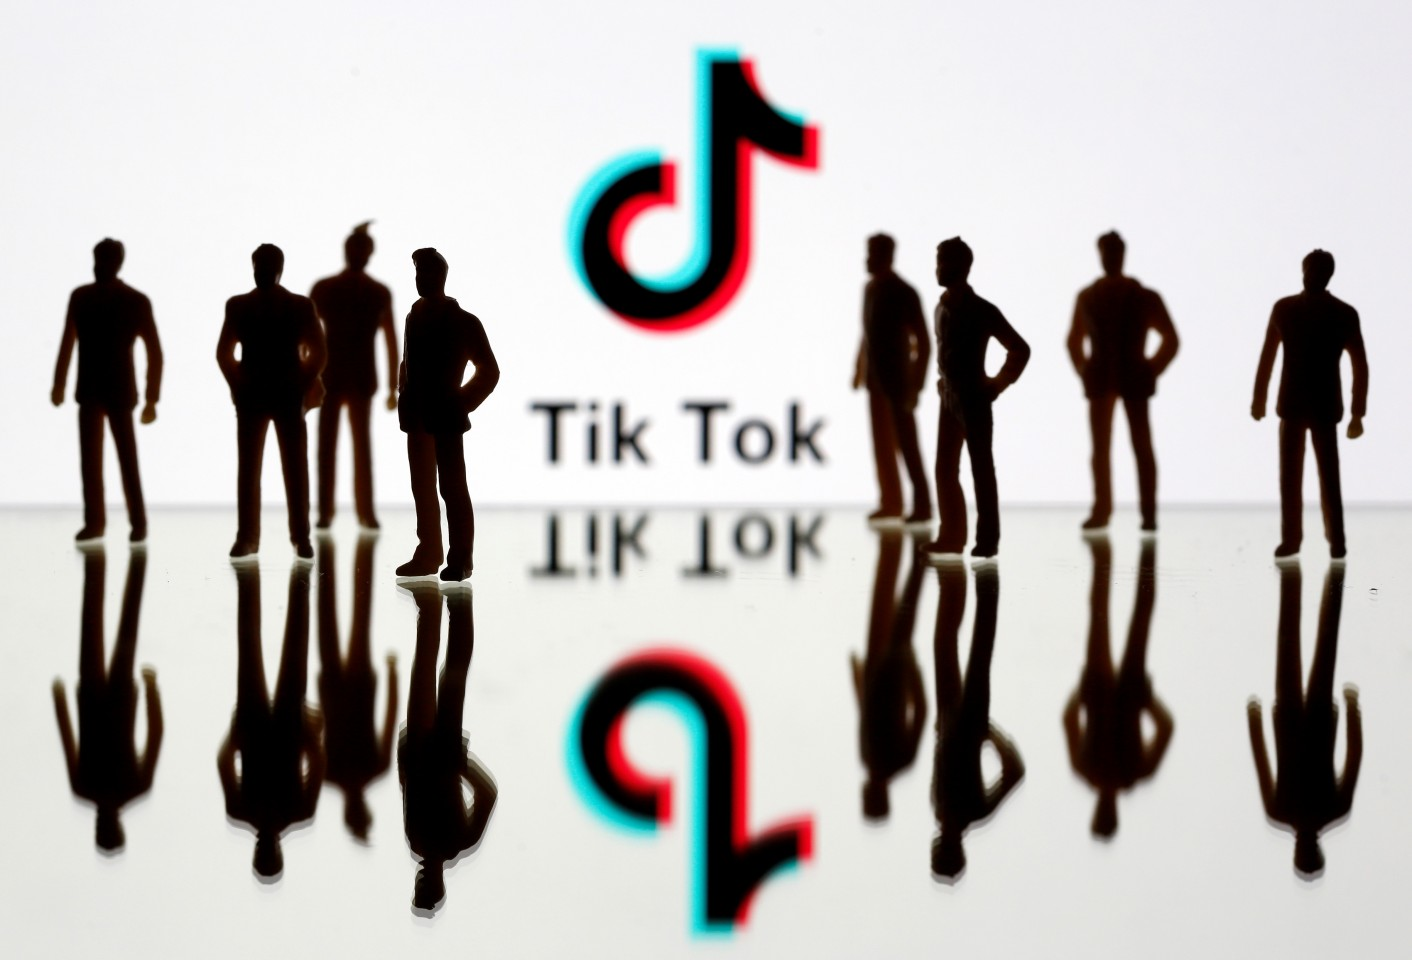 The rise in popularity of TikTok was also the start of a series of unfortunate political troubles. (REUTERS/Dado Ruvic/Illustration)